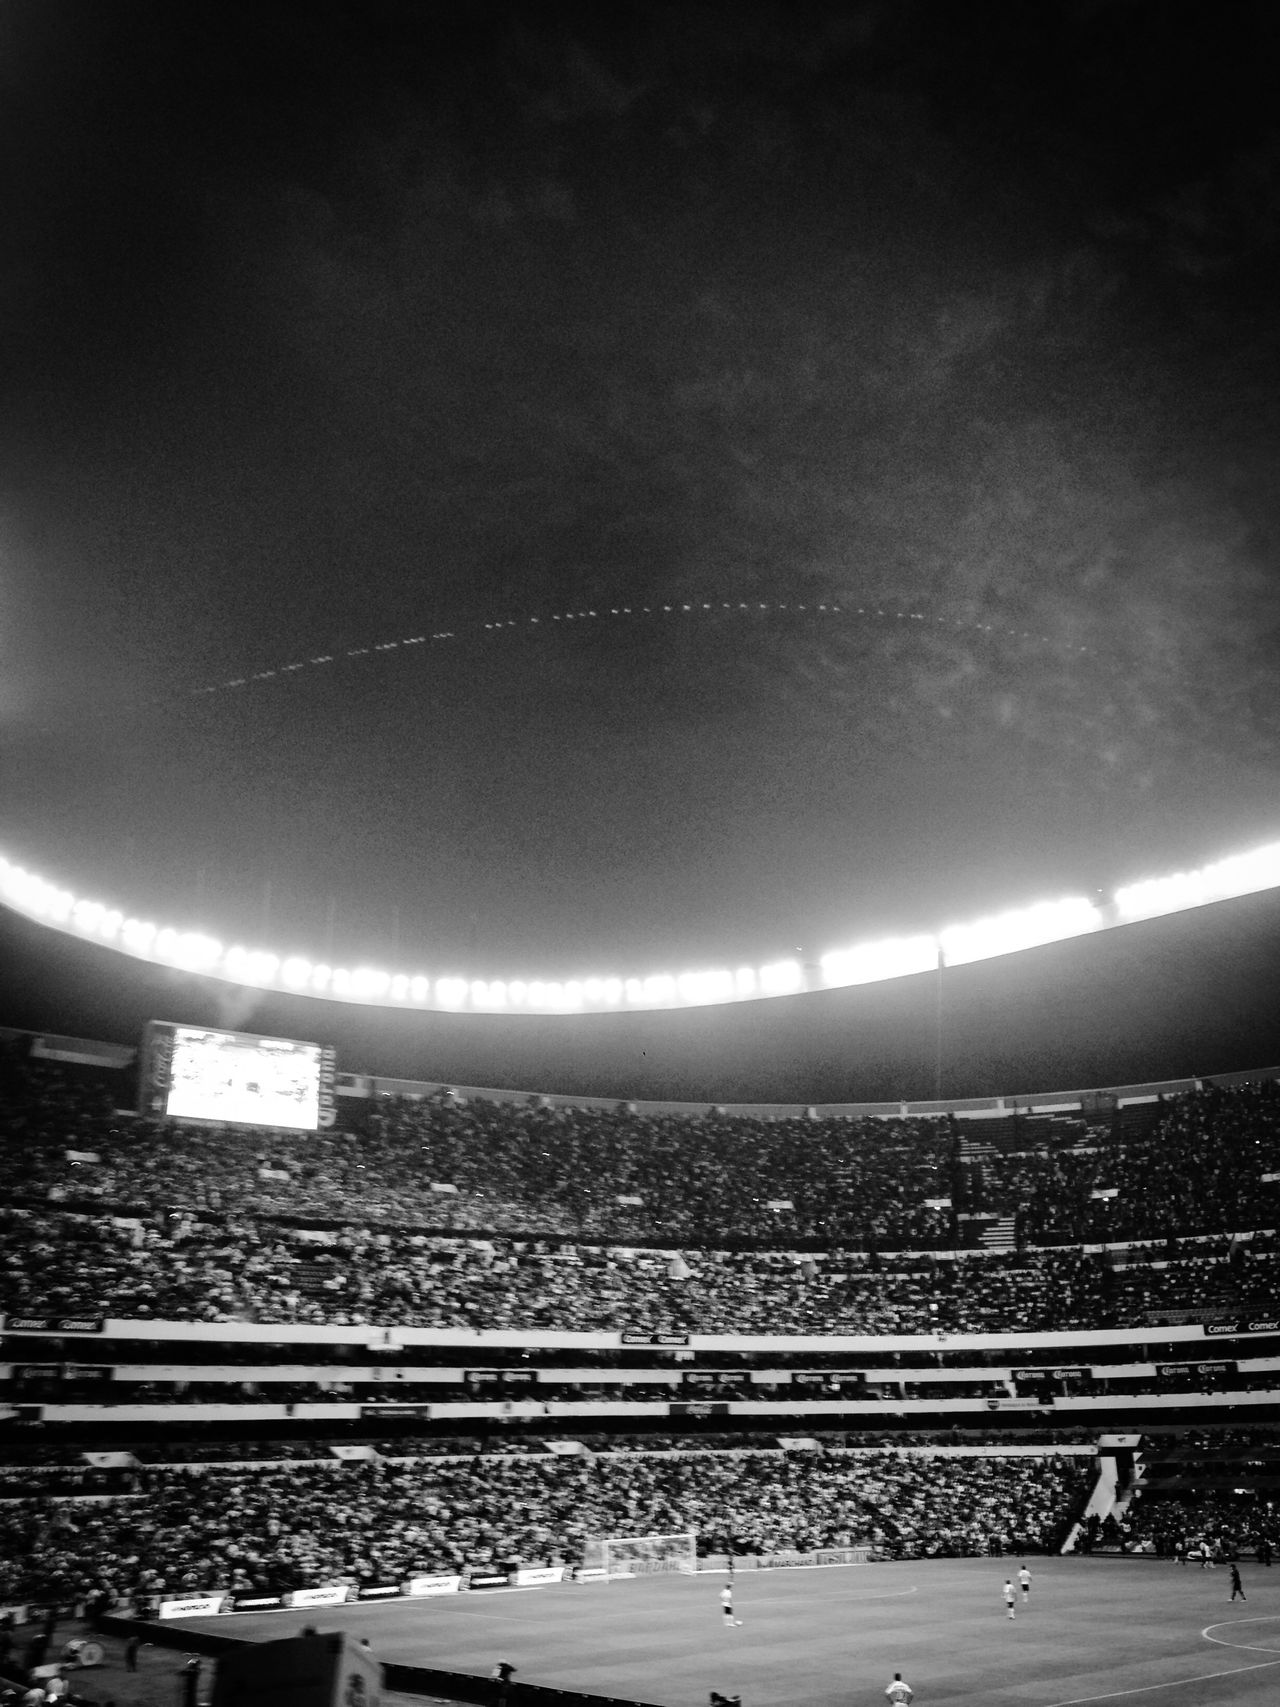 Soccer⚽ Futebol Estadioazteca Mexico Futbol Football Stadium Sports EyeEm Best Shots Sky Clouds